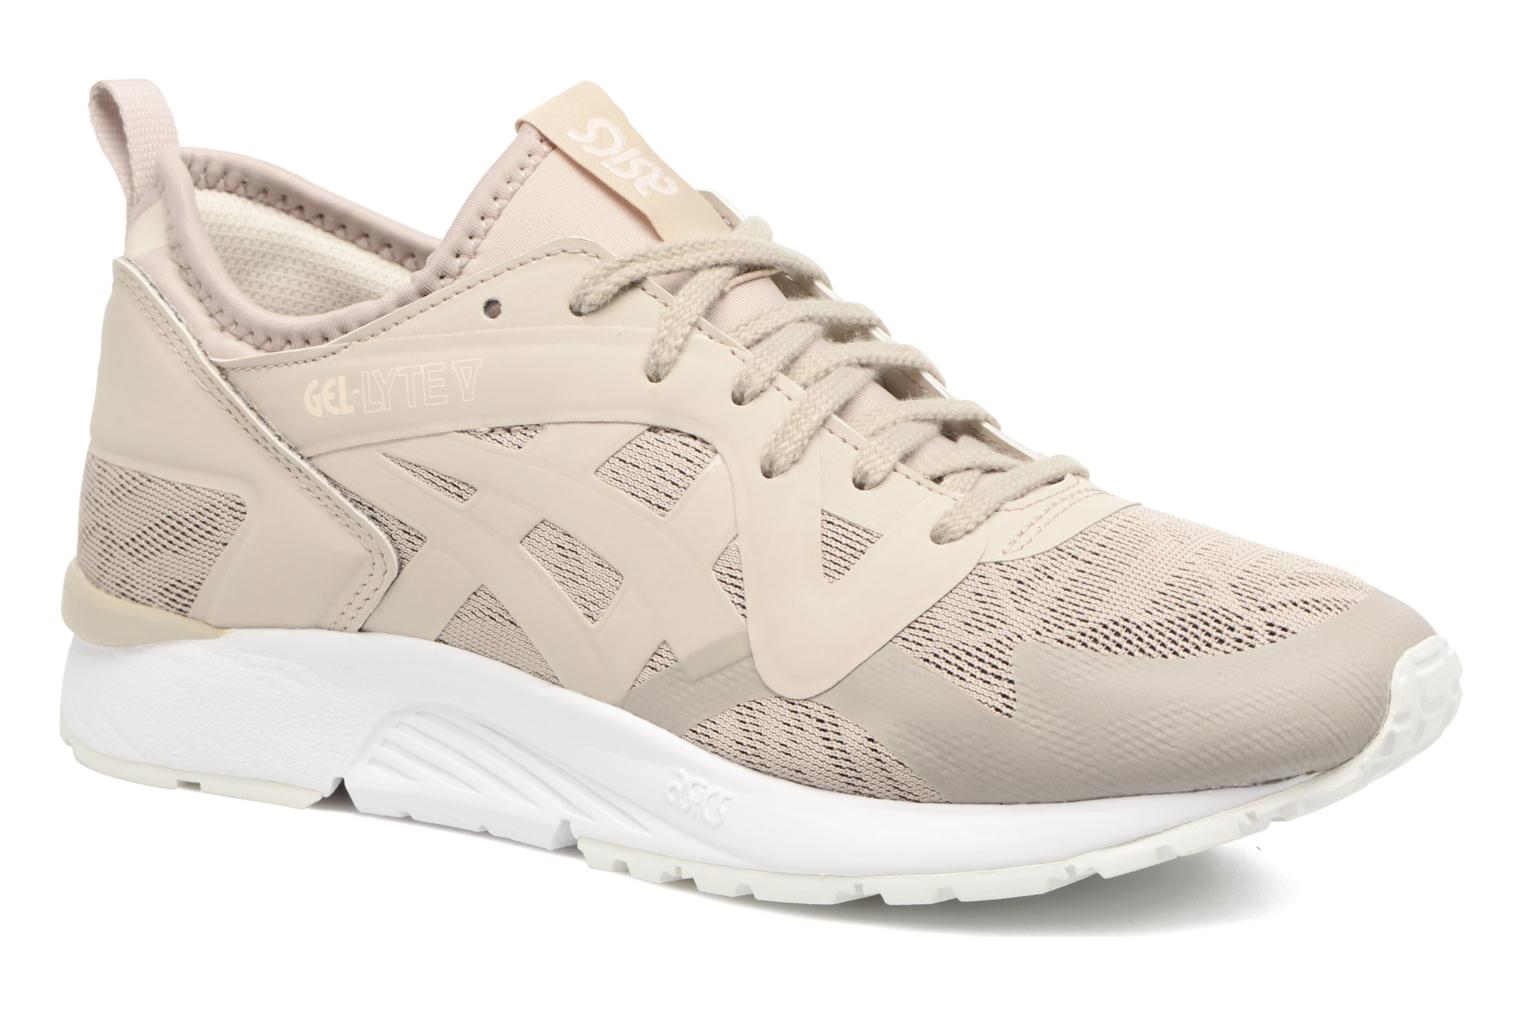 Gel-Lyte V Ns W Feather Grey/Feather Grey